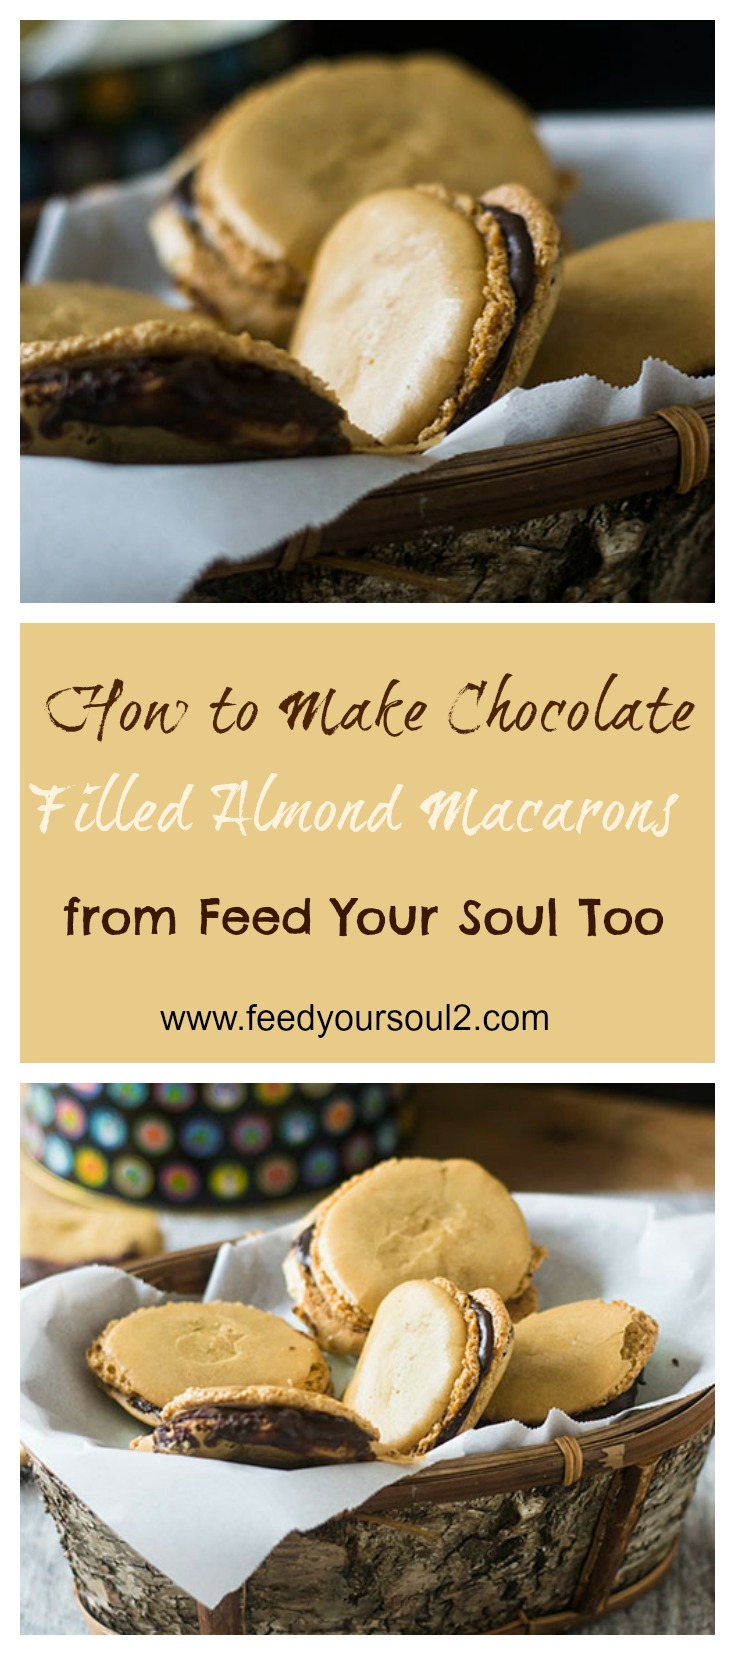 Chocolate Filled Almond Macarons #glutenfree #cookies #dessert | feedyoursoul2.com